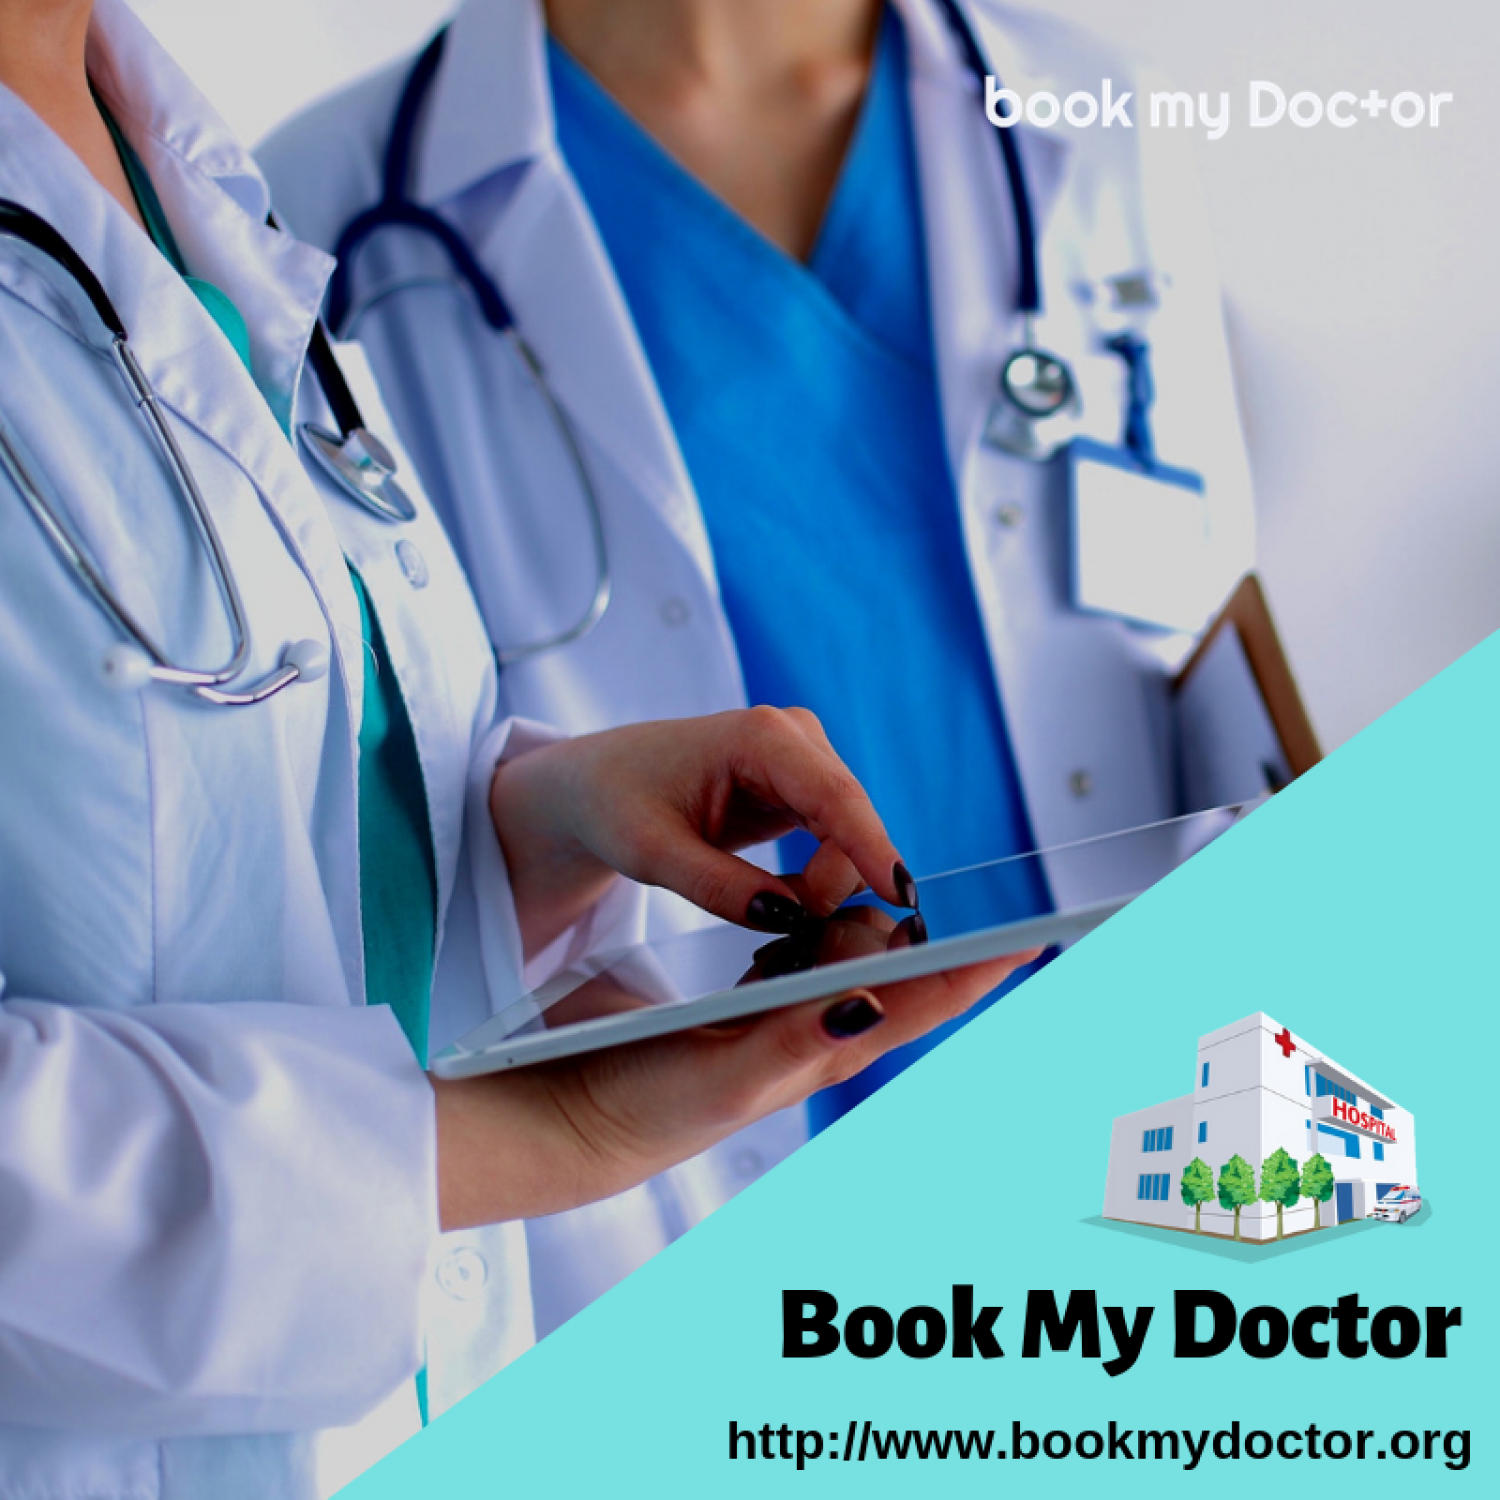 Find Nearby Hospitals & Book Doctor Appointments Online Infographic